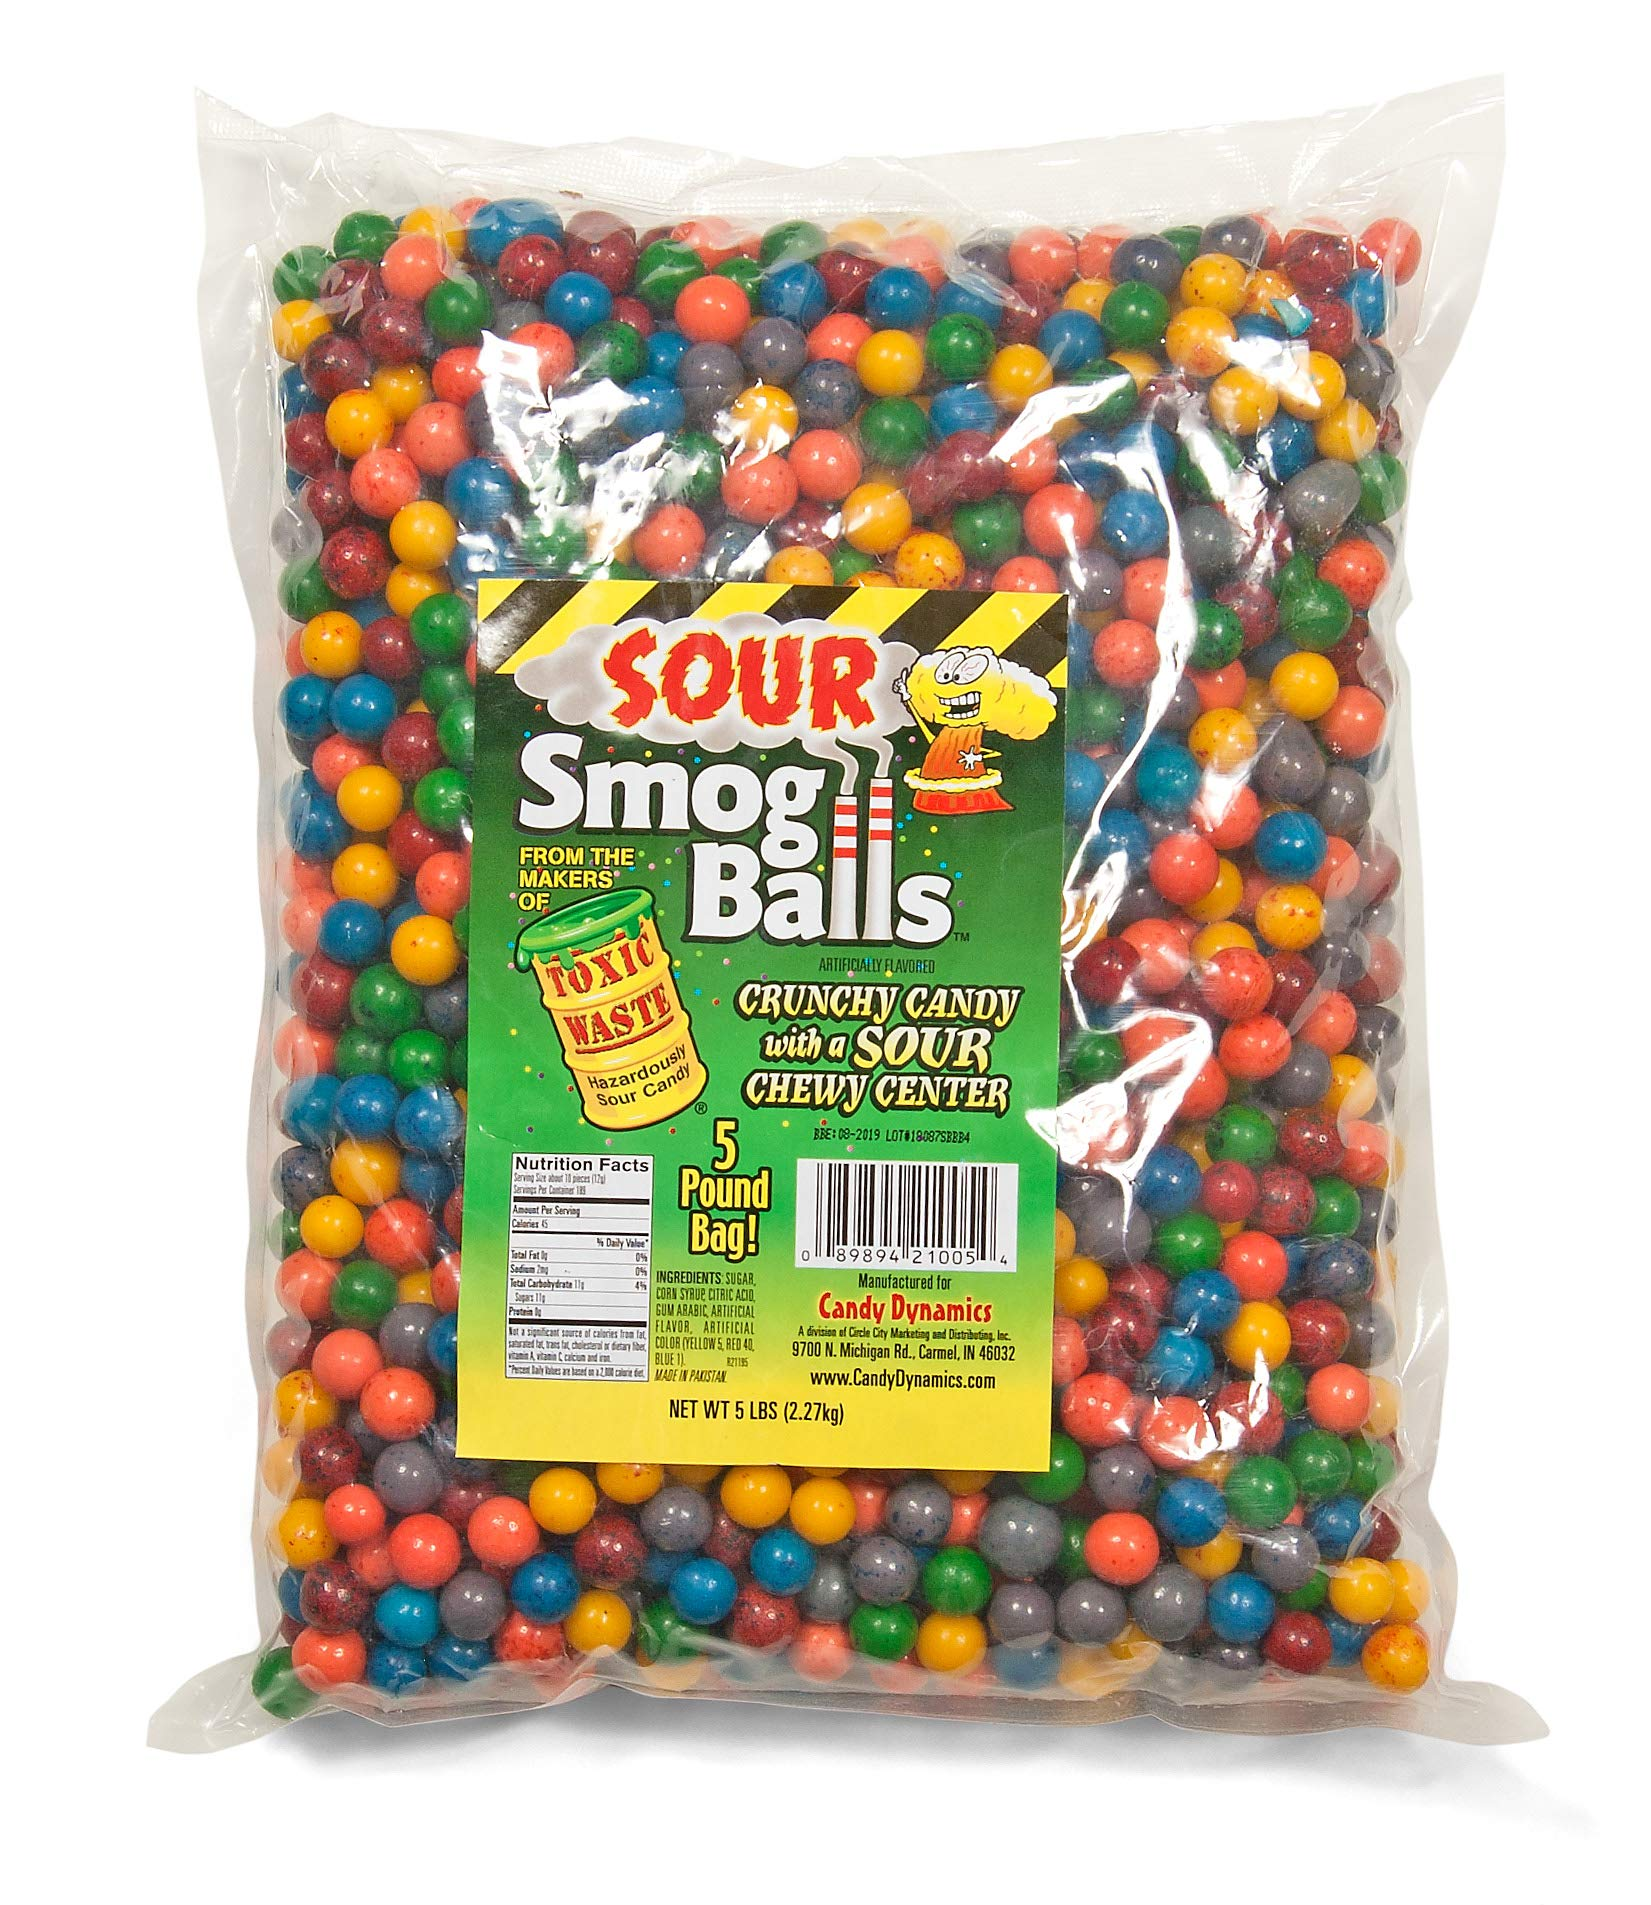 TOXIC WASTE Smog Balls Bulk Poly Bag 5 Pound of loose candy, Assorted Flavors, 5.0 Pound by TOXIC WASTE